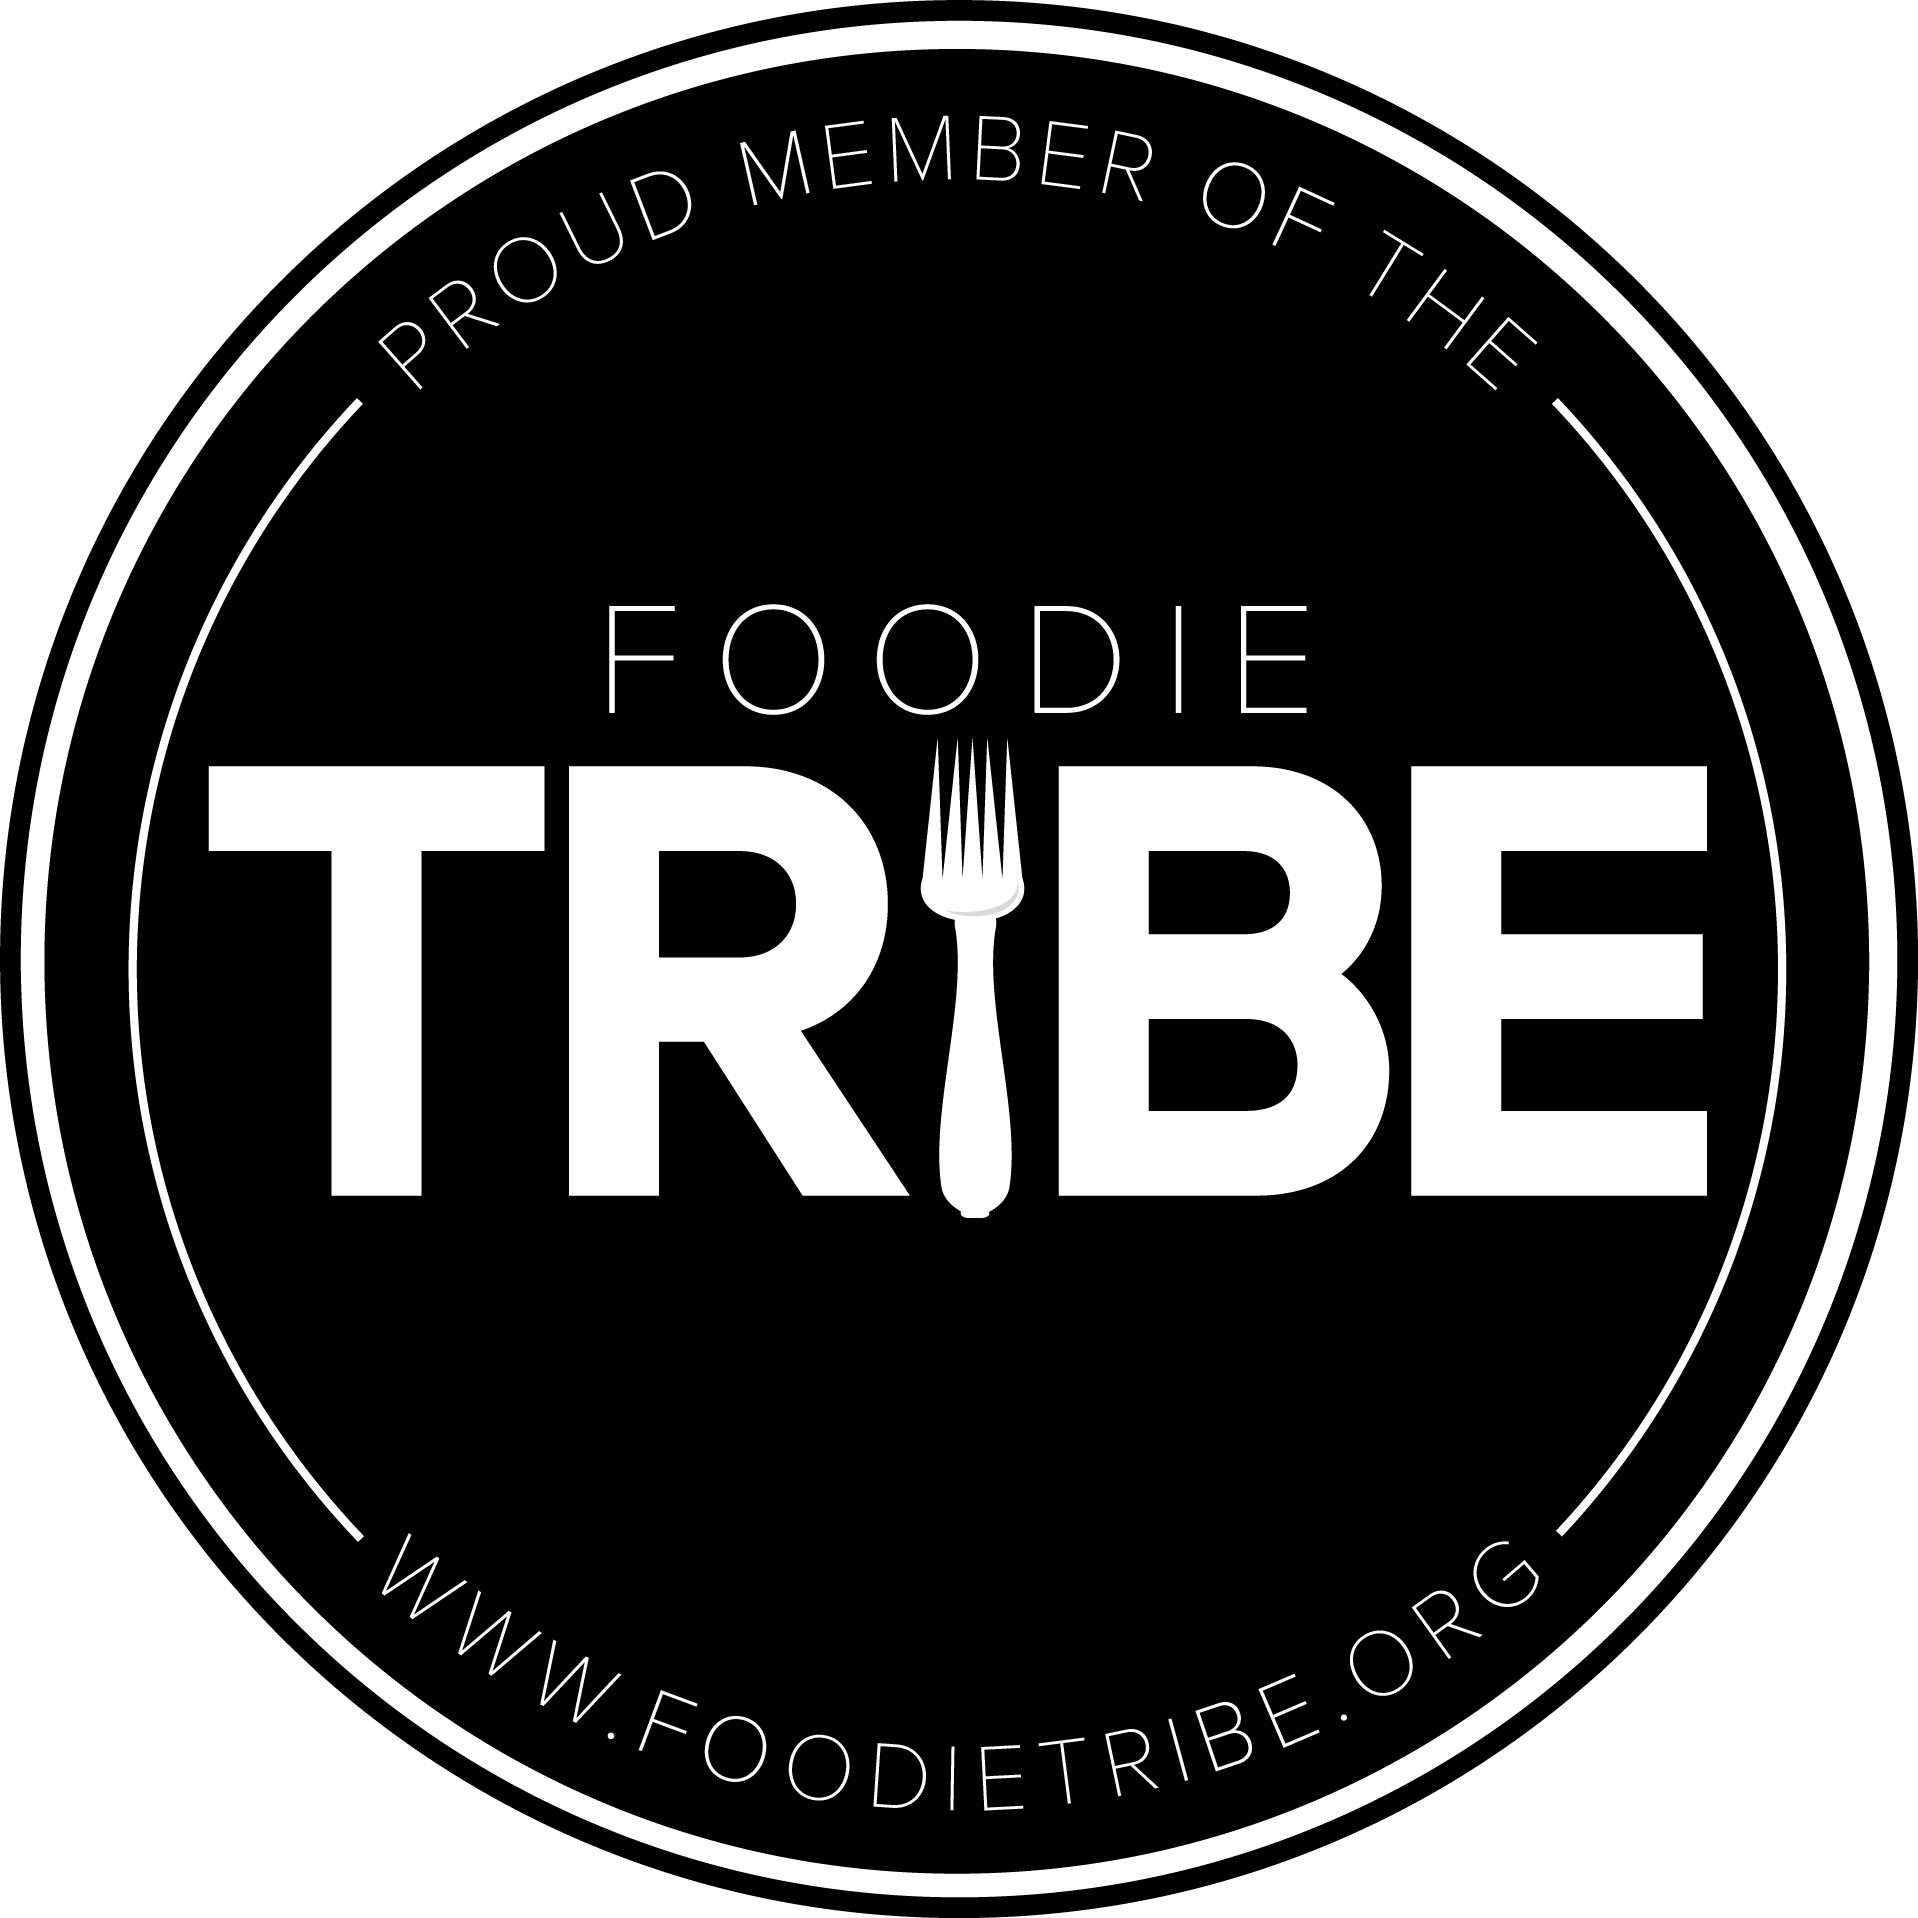 FoodieTribeBadge